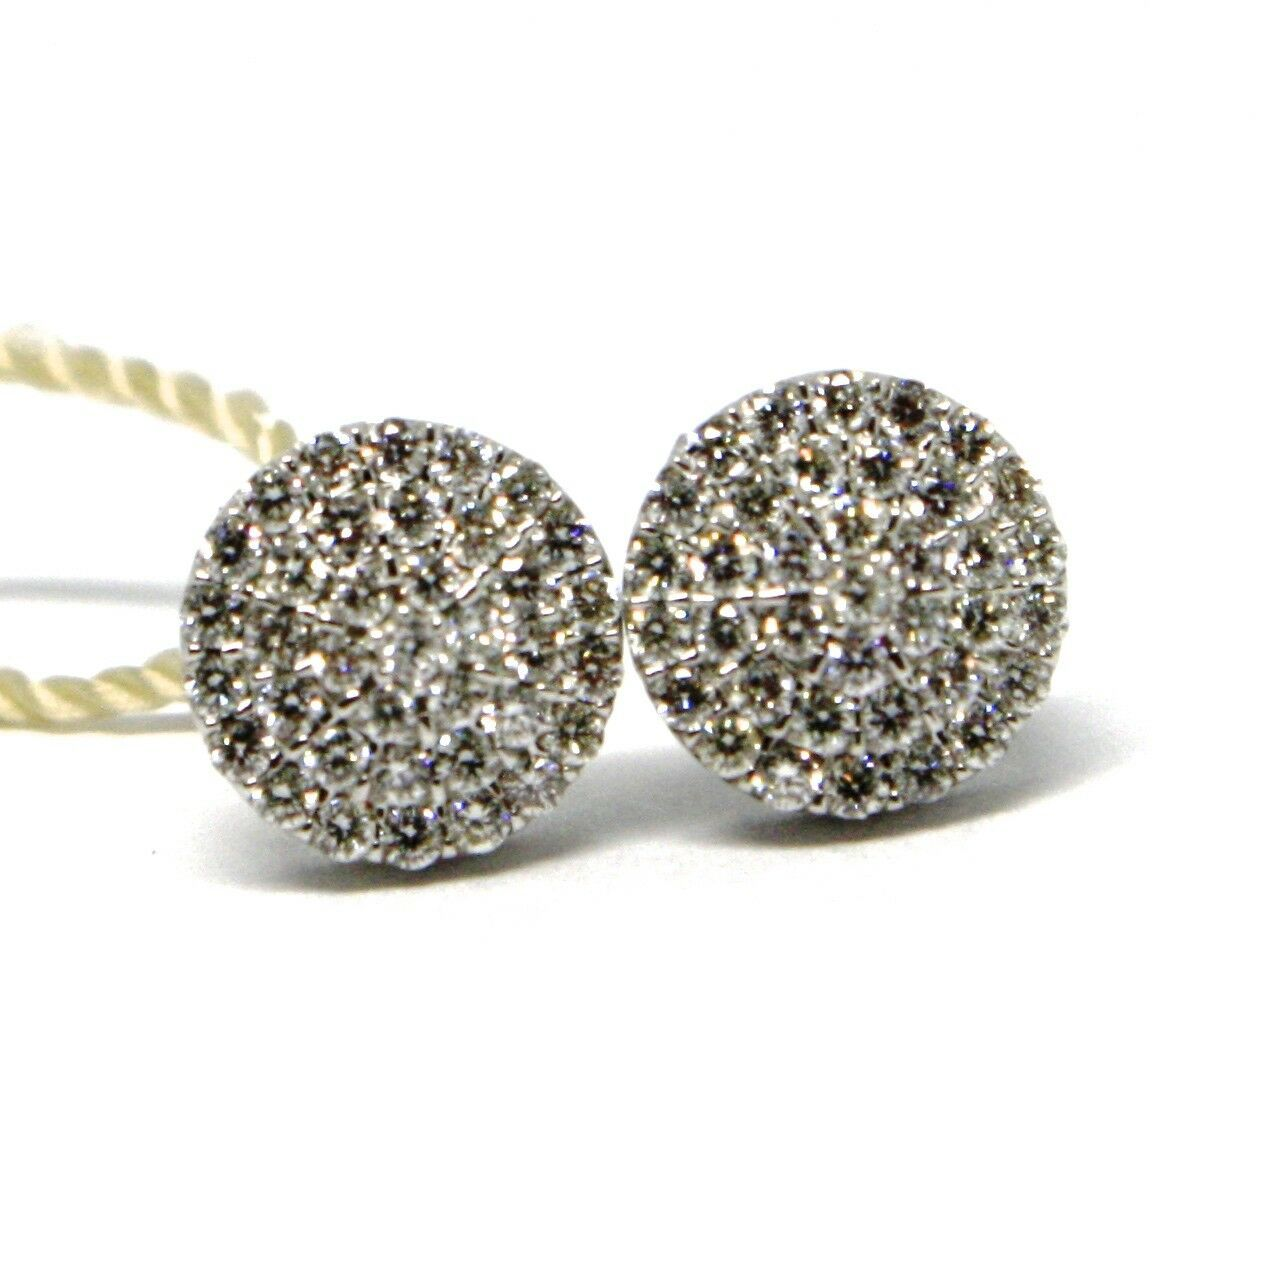 WHITE GOLD EARRINGS 750 18K, DIAMONDS CARAT 0.50, BUTTON, ROUND, pavÉ 8 MM